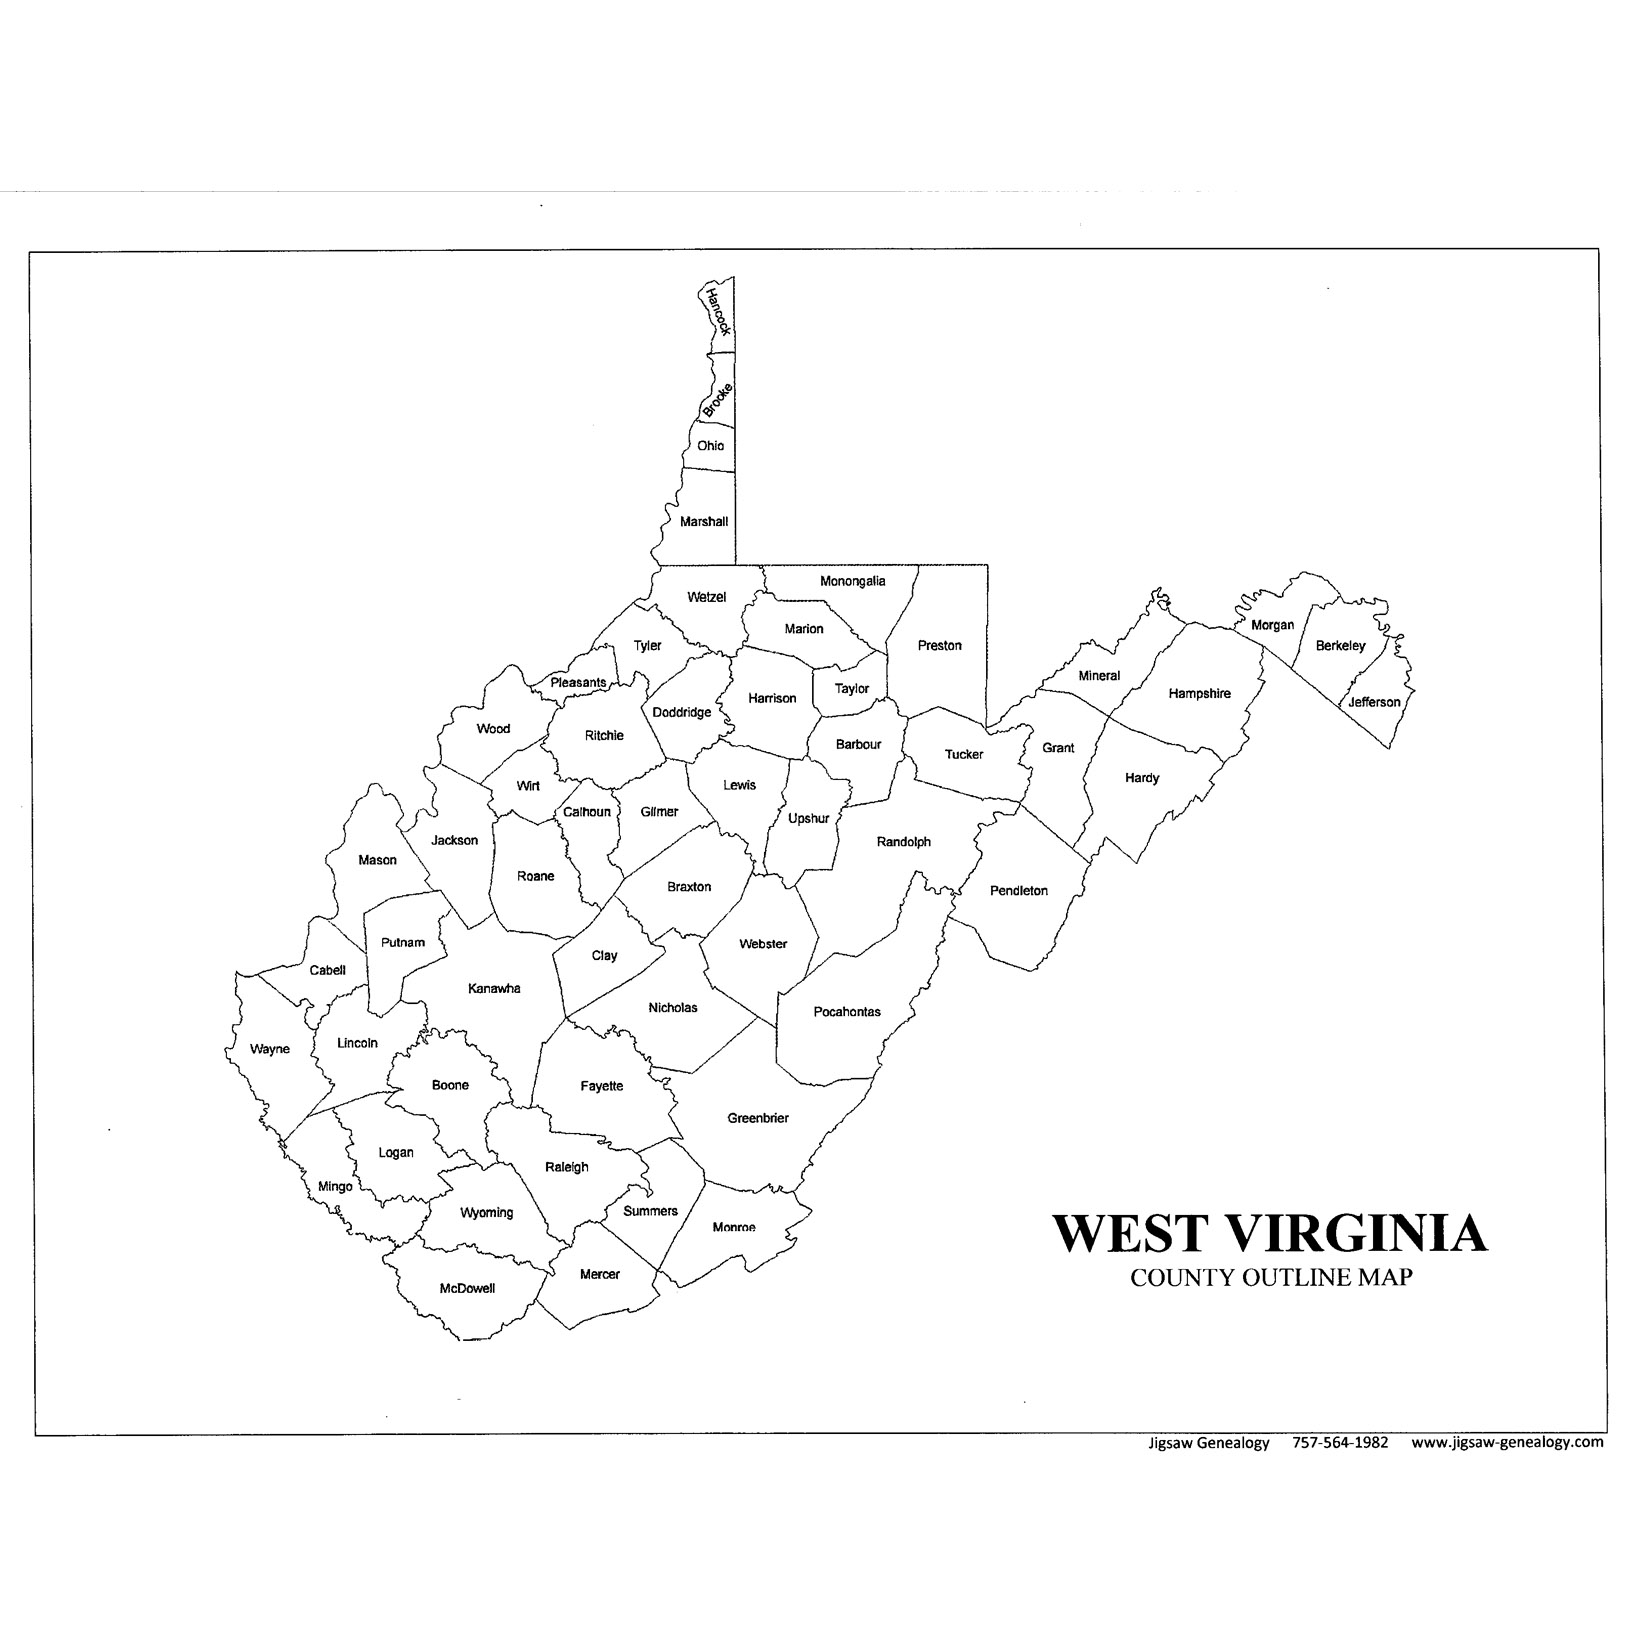 West Virginia County Map JigsawGenealogy